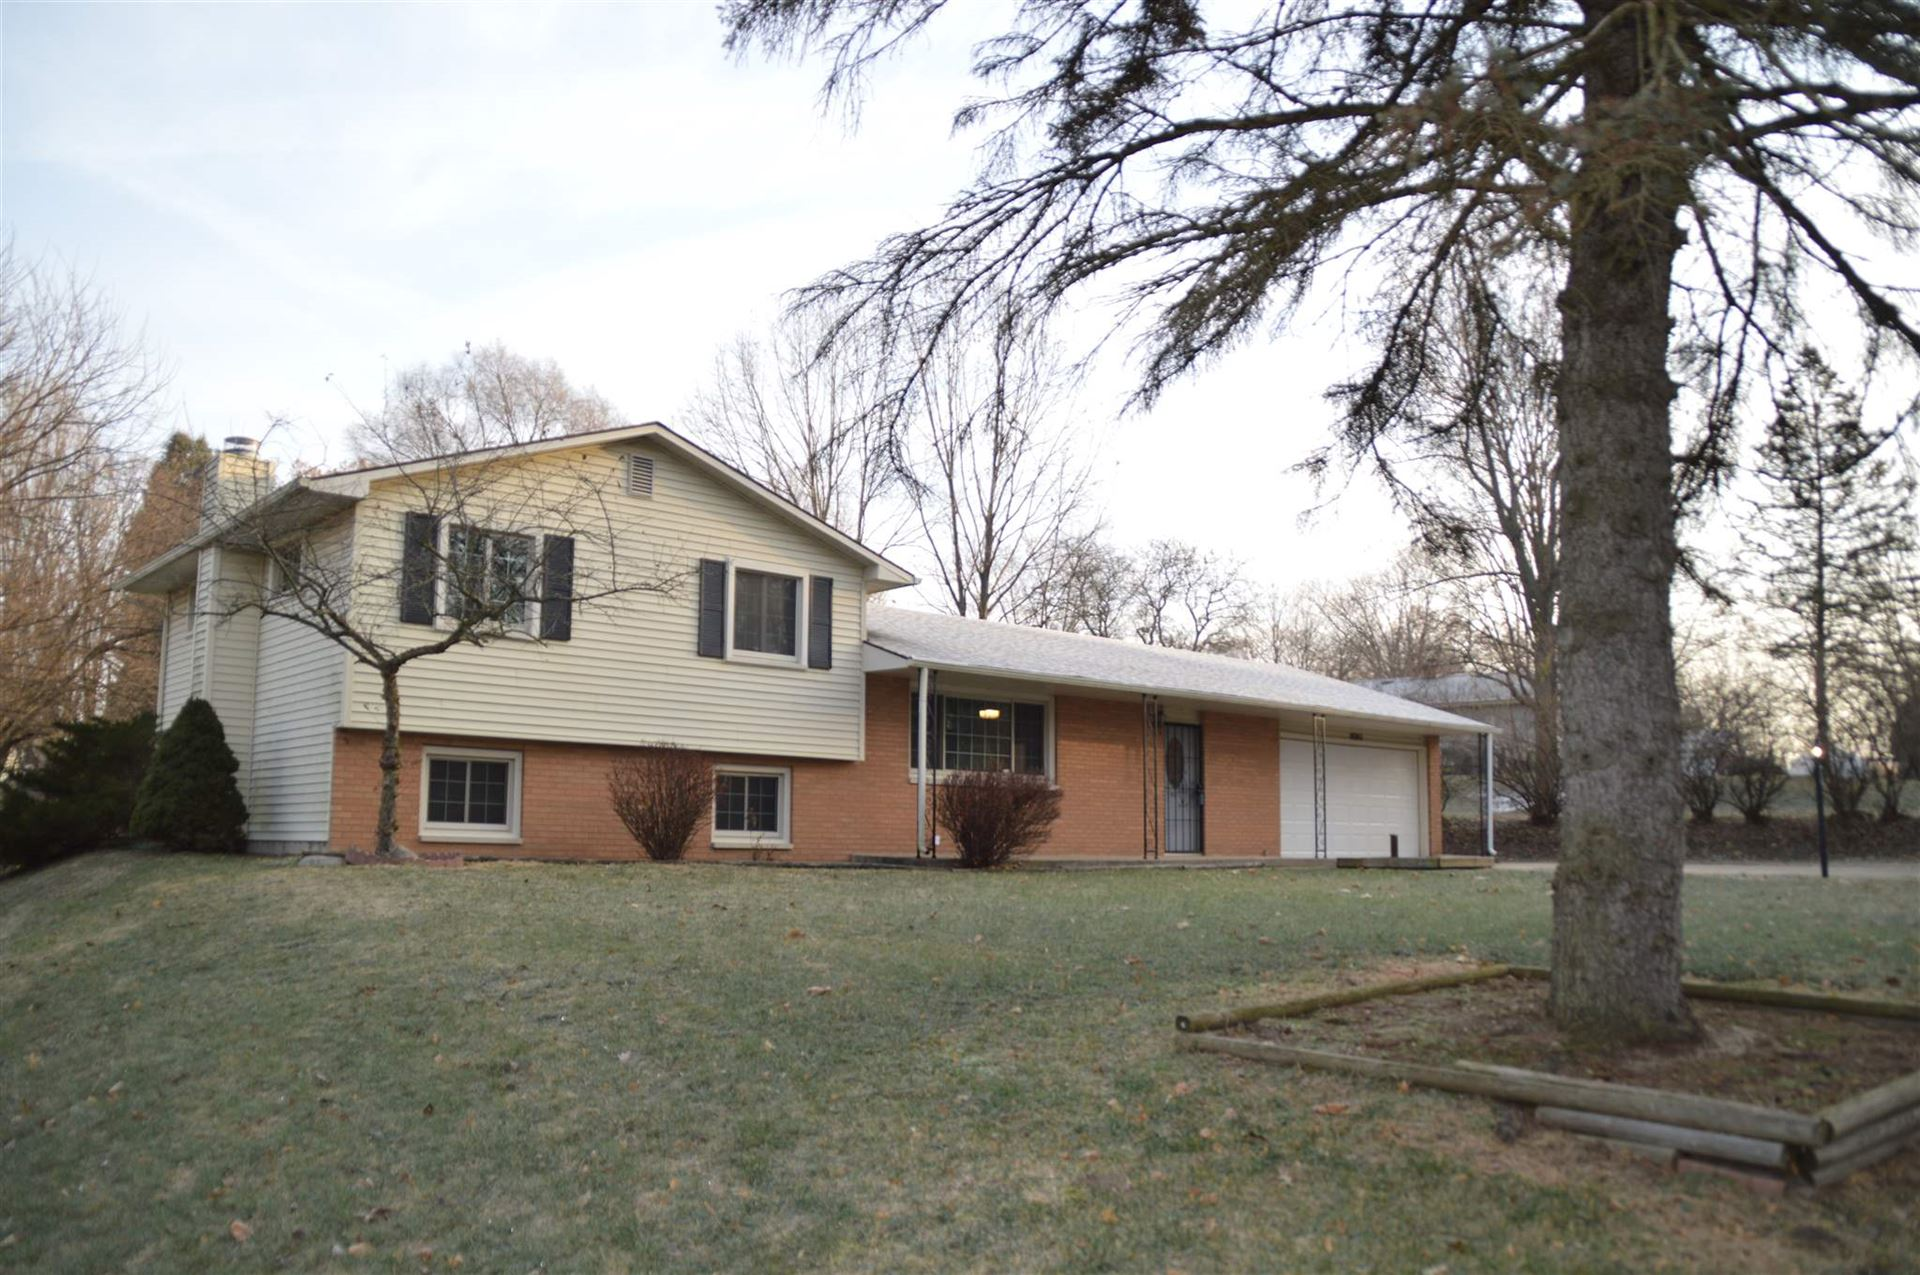 18243 Clairmont Drive, South Bend, IN 46637 - #: 201953210